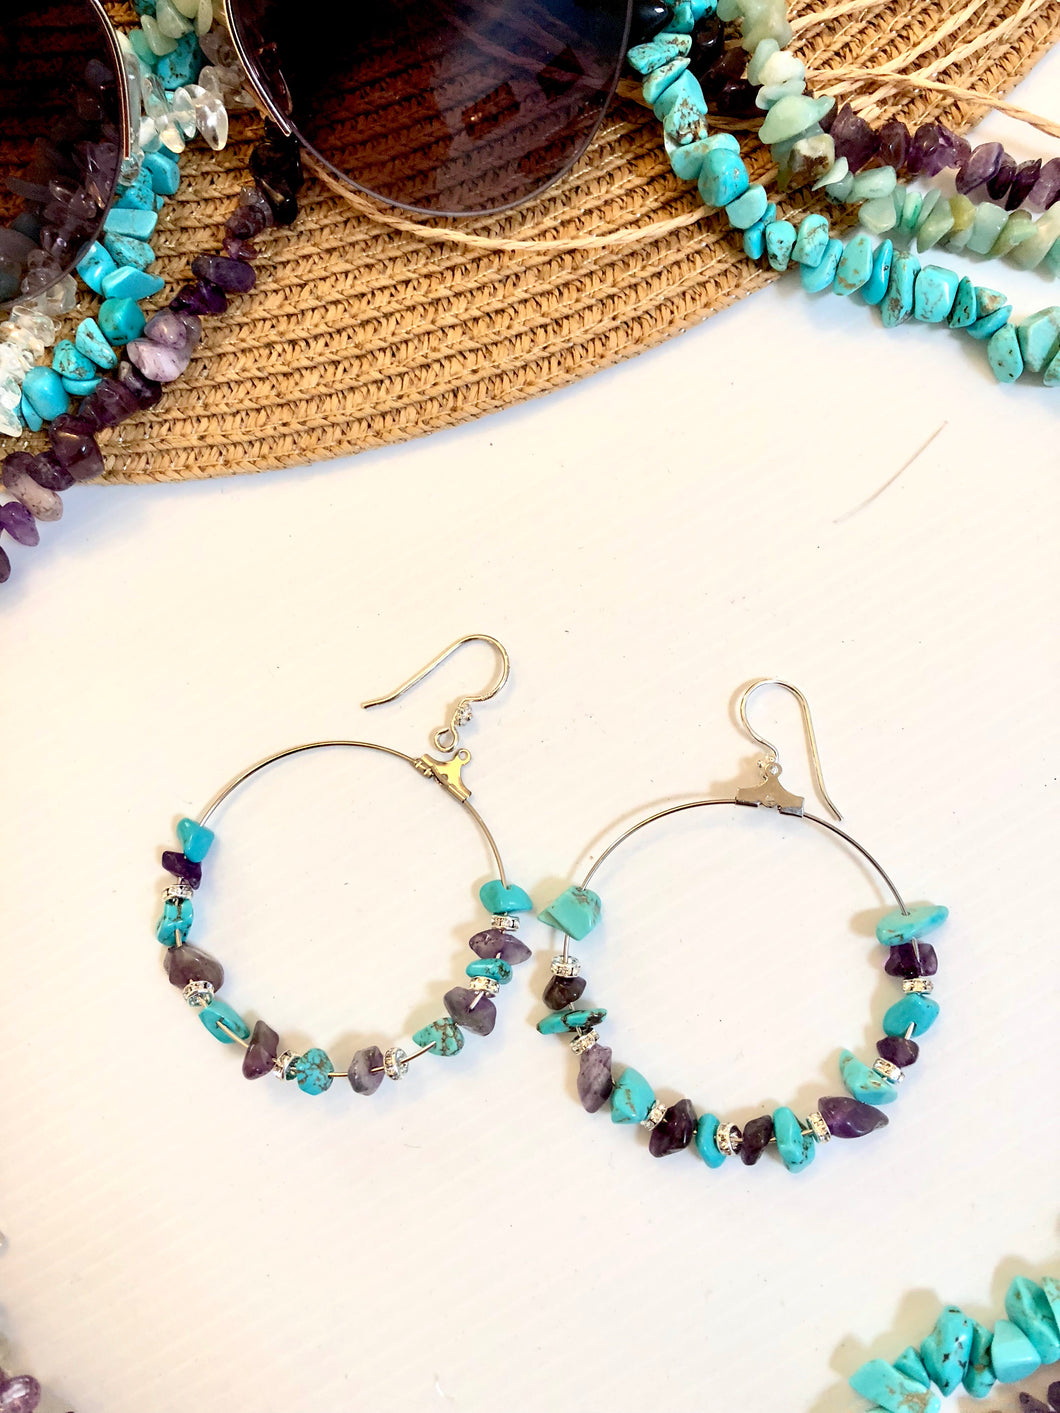 amethyst and howlite chips jewellery earrings